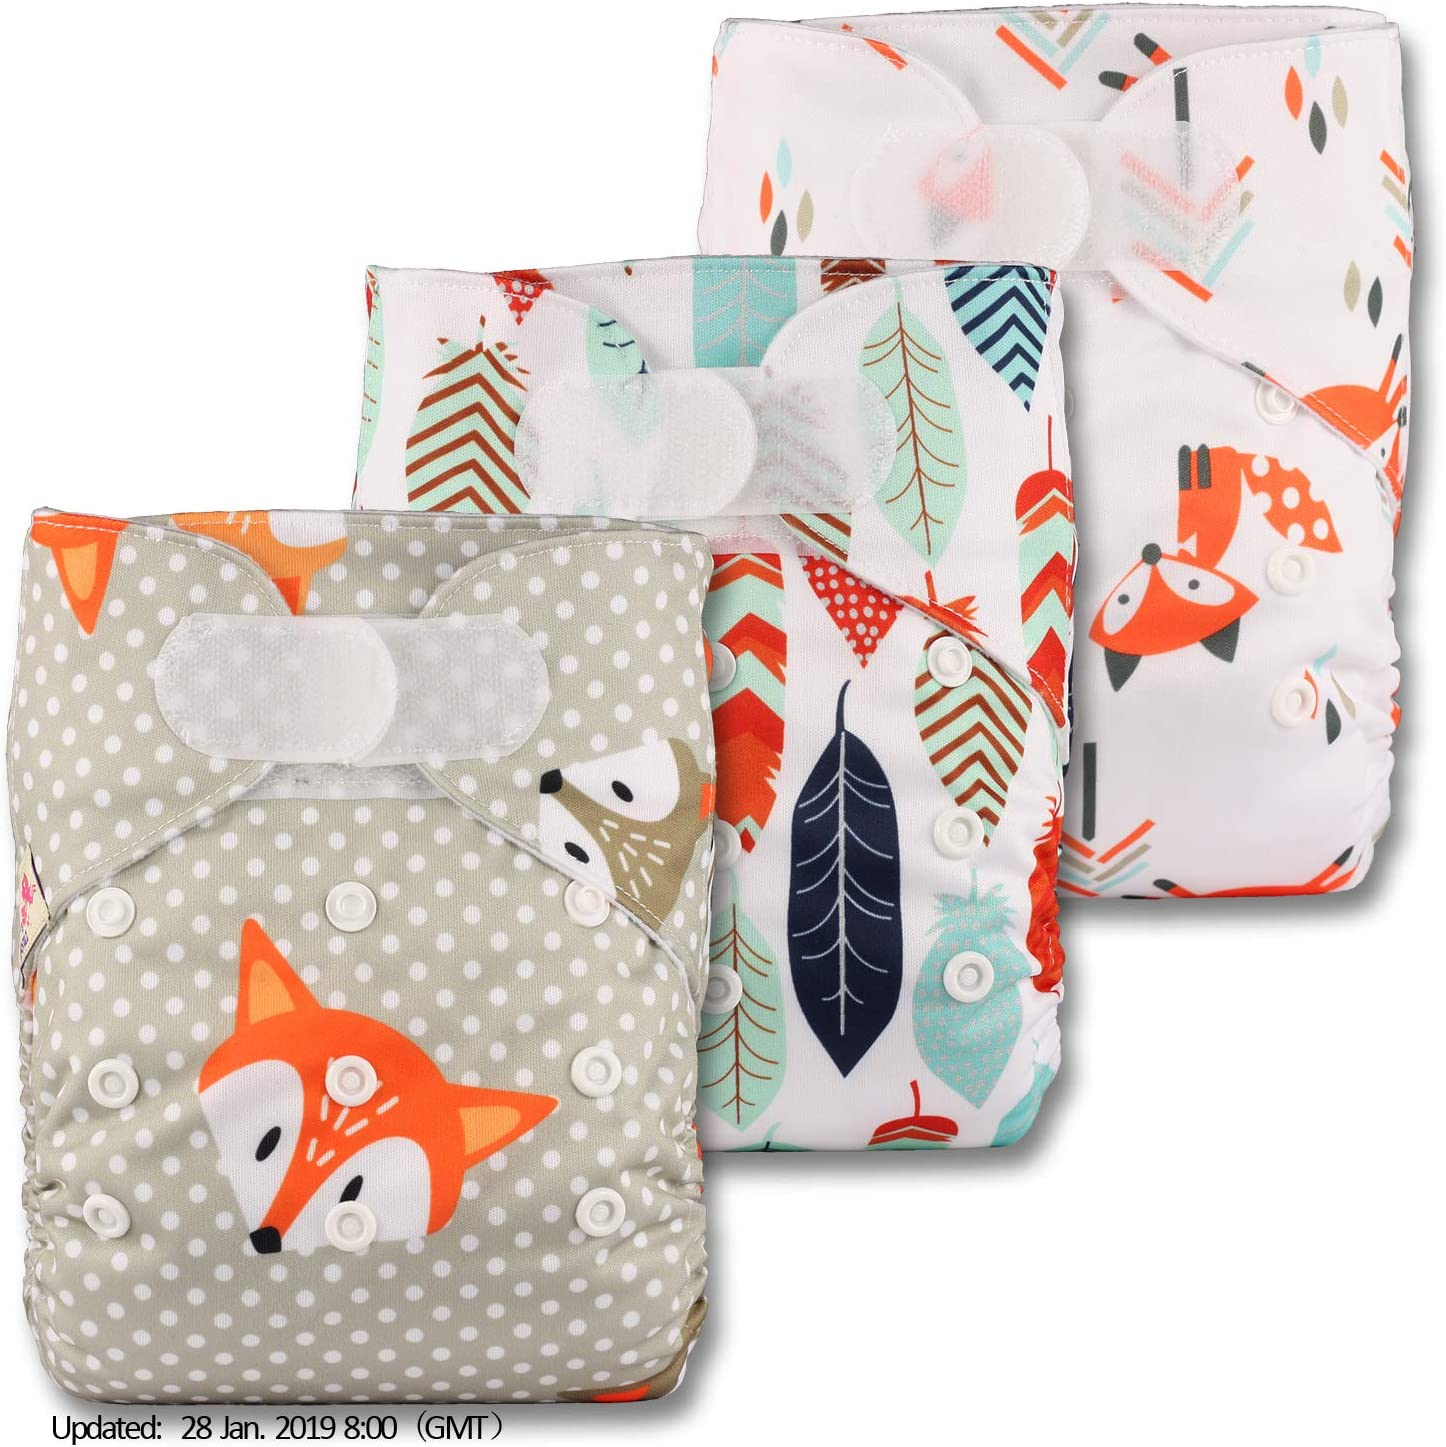 Reusable Pocket Cloth Nappy Set of 3 with 3 Bamboo Inserts Patterns 311 Fastener: Hook-Loop Littles /& Bloomz